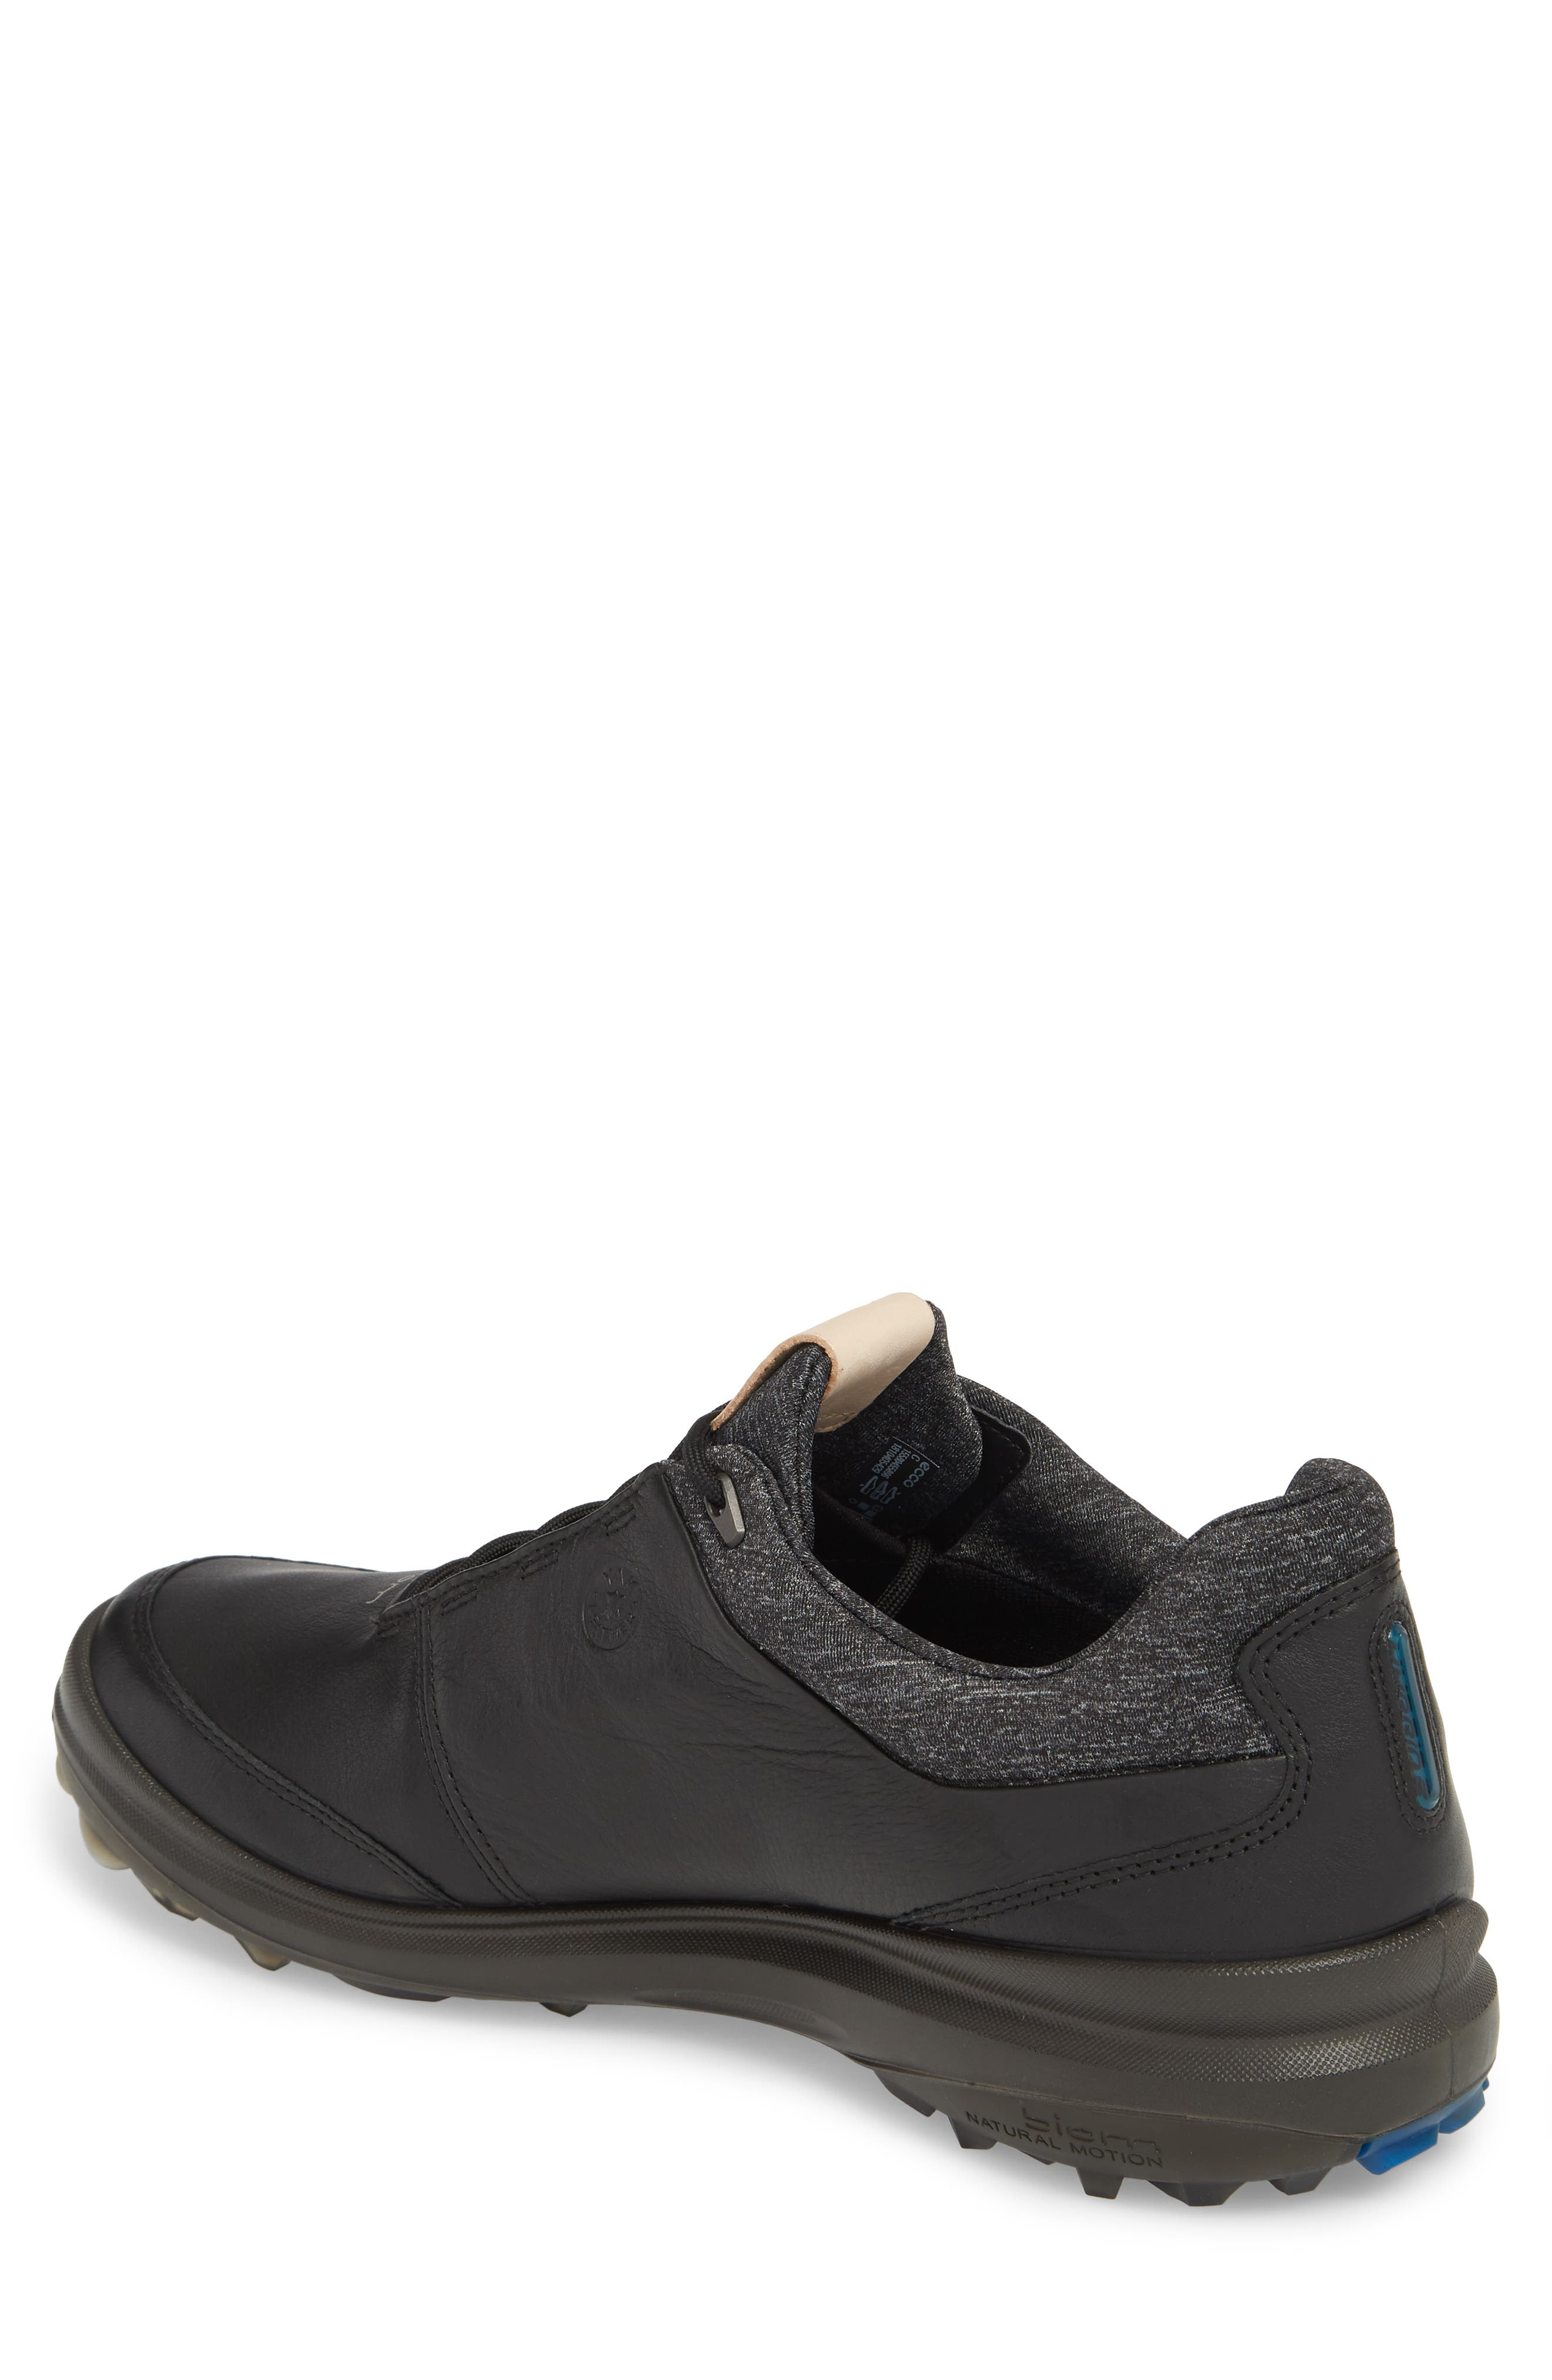 BIOM Hybrid 3 Gore-Tex<sup>®</sup> Golf Shoe,                             Alternate thumbnail 2, color,                             BLACK/ BERMUDA BLUE LEATHER